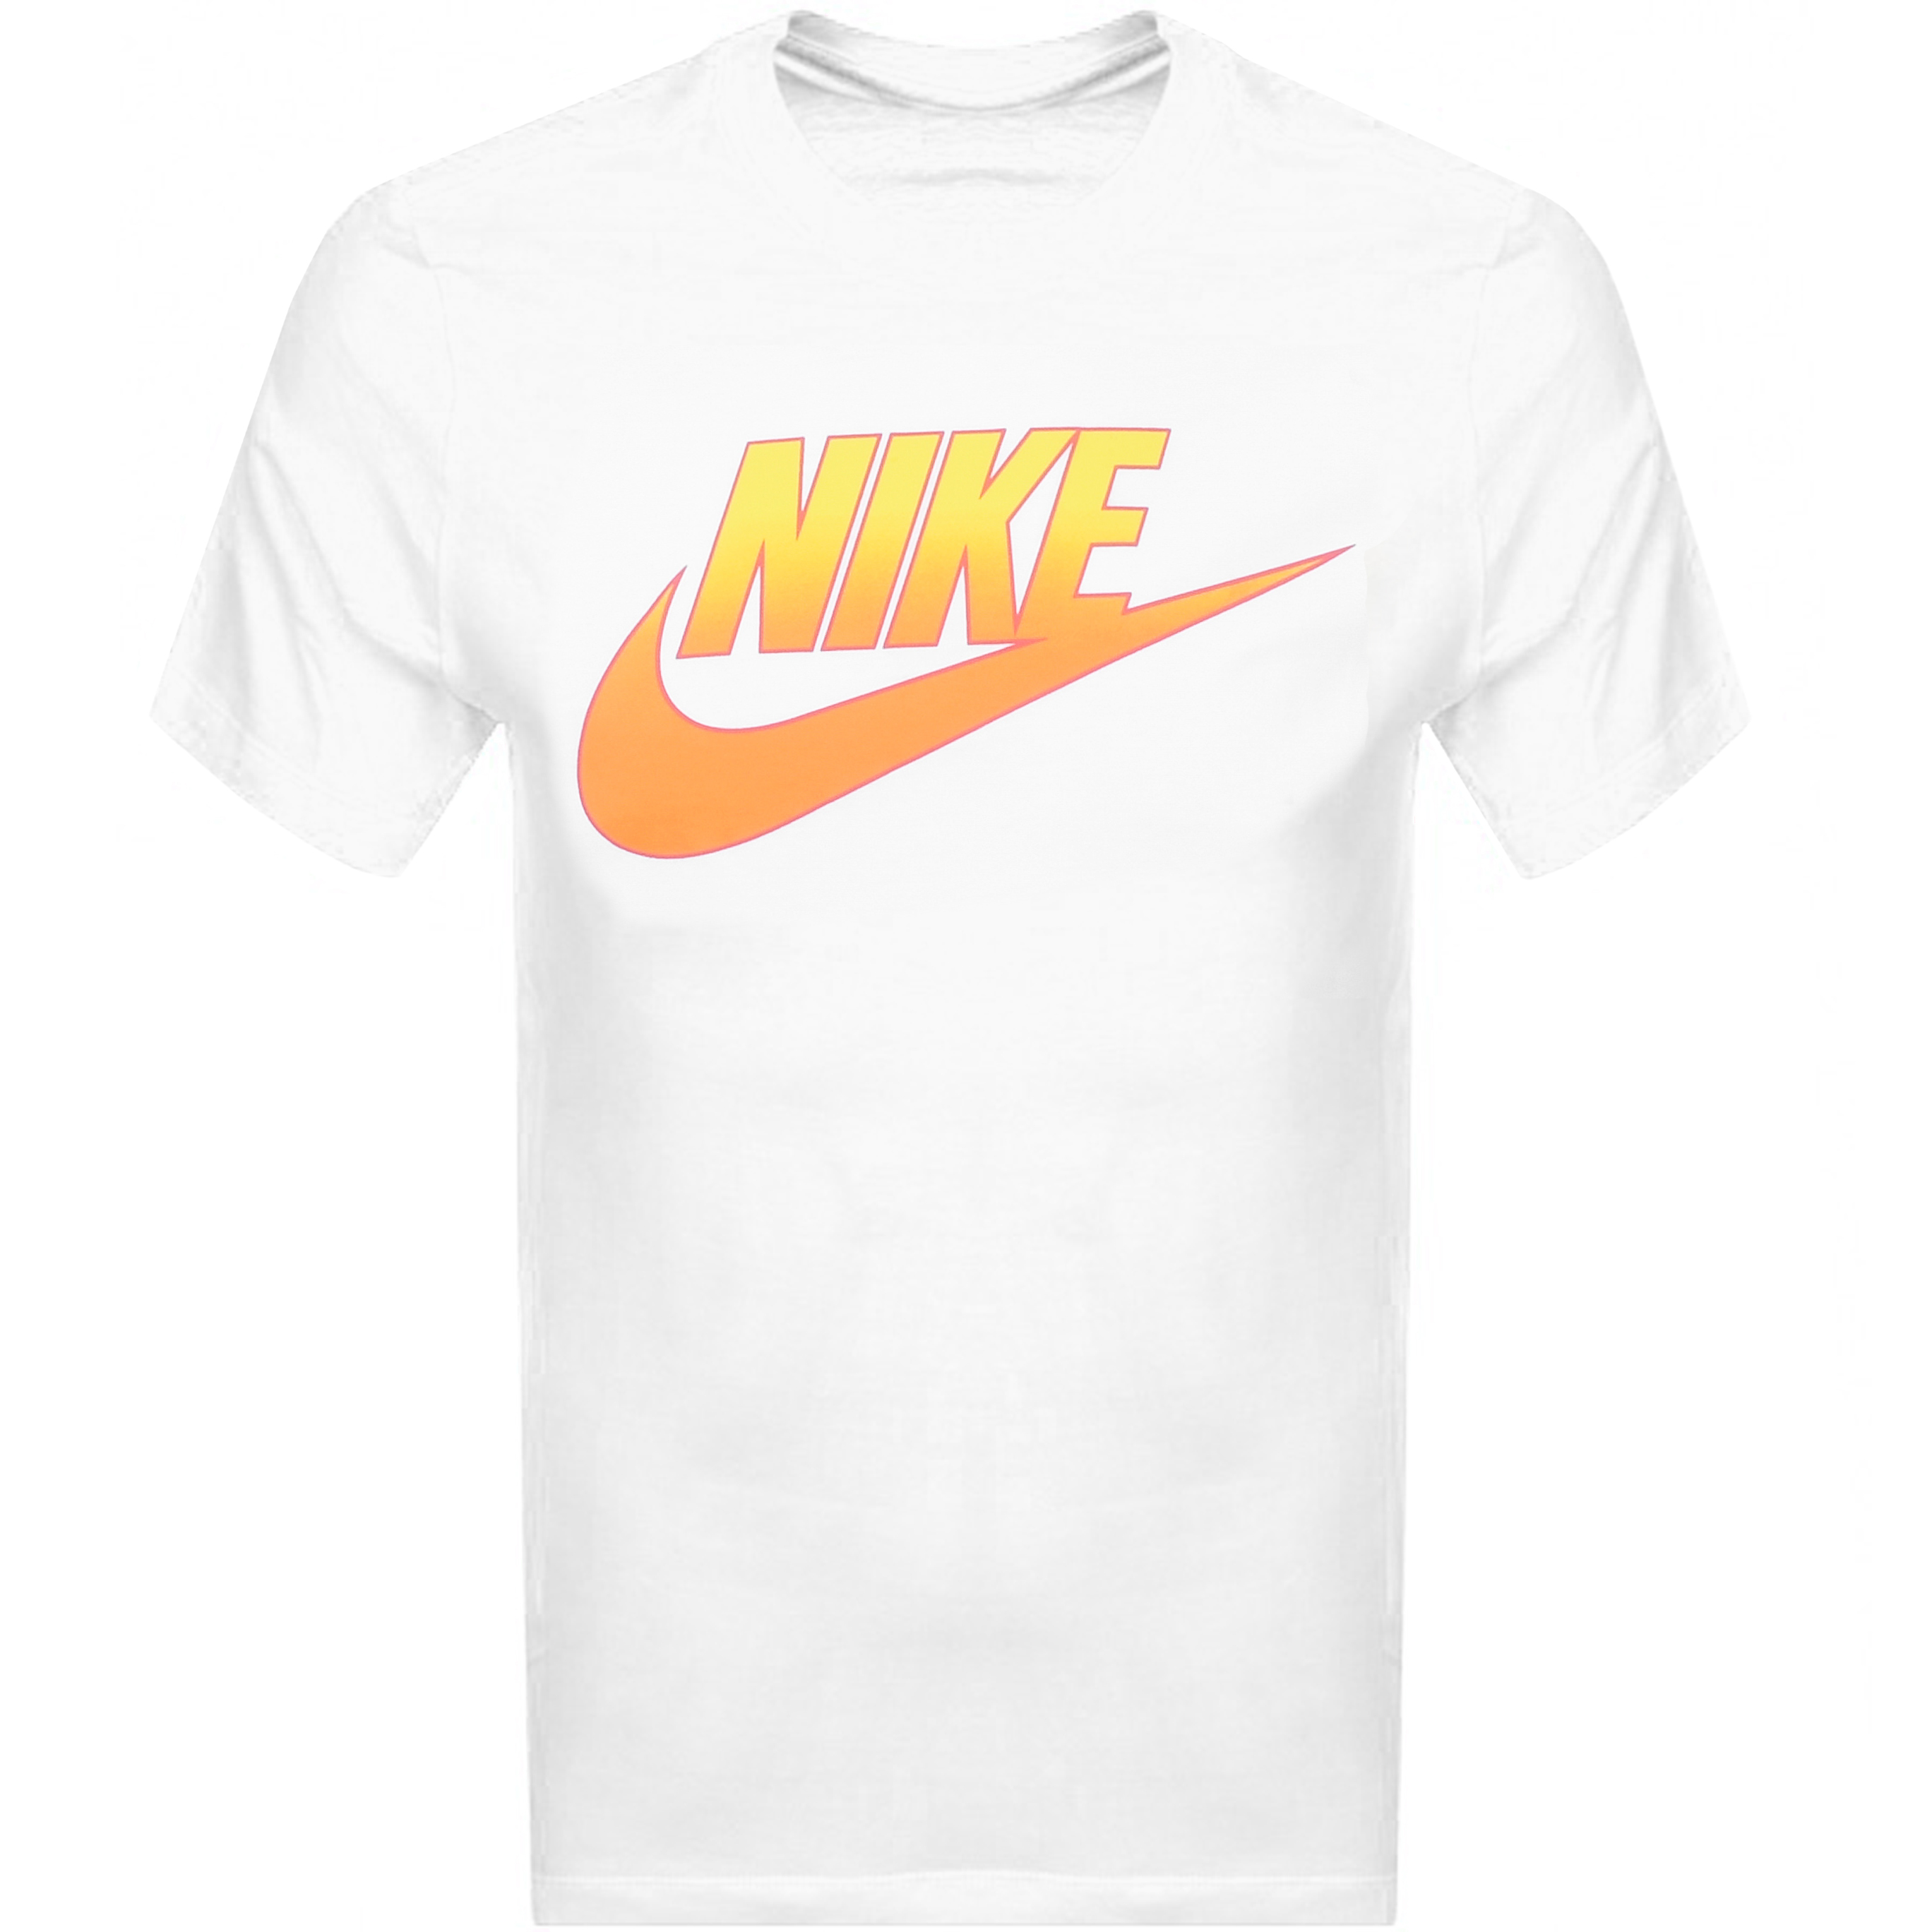 Nike Crew Neck Logo T Shirt White